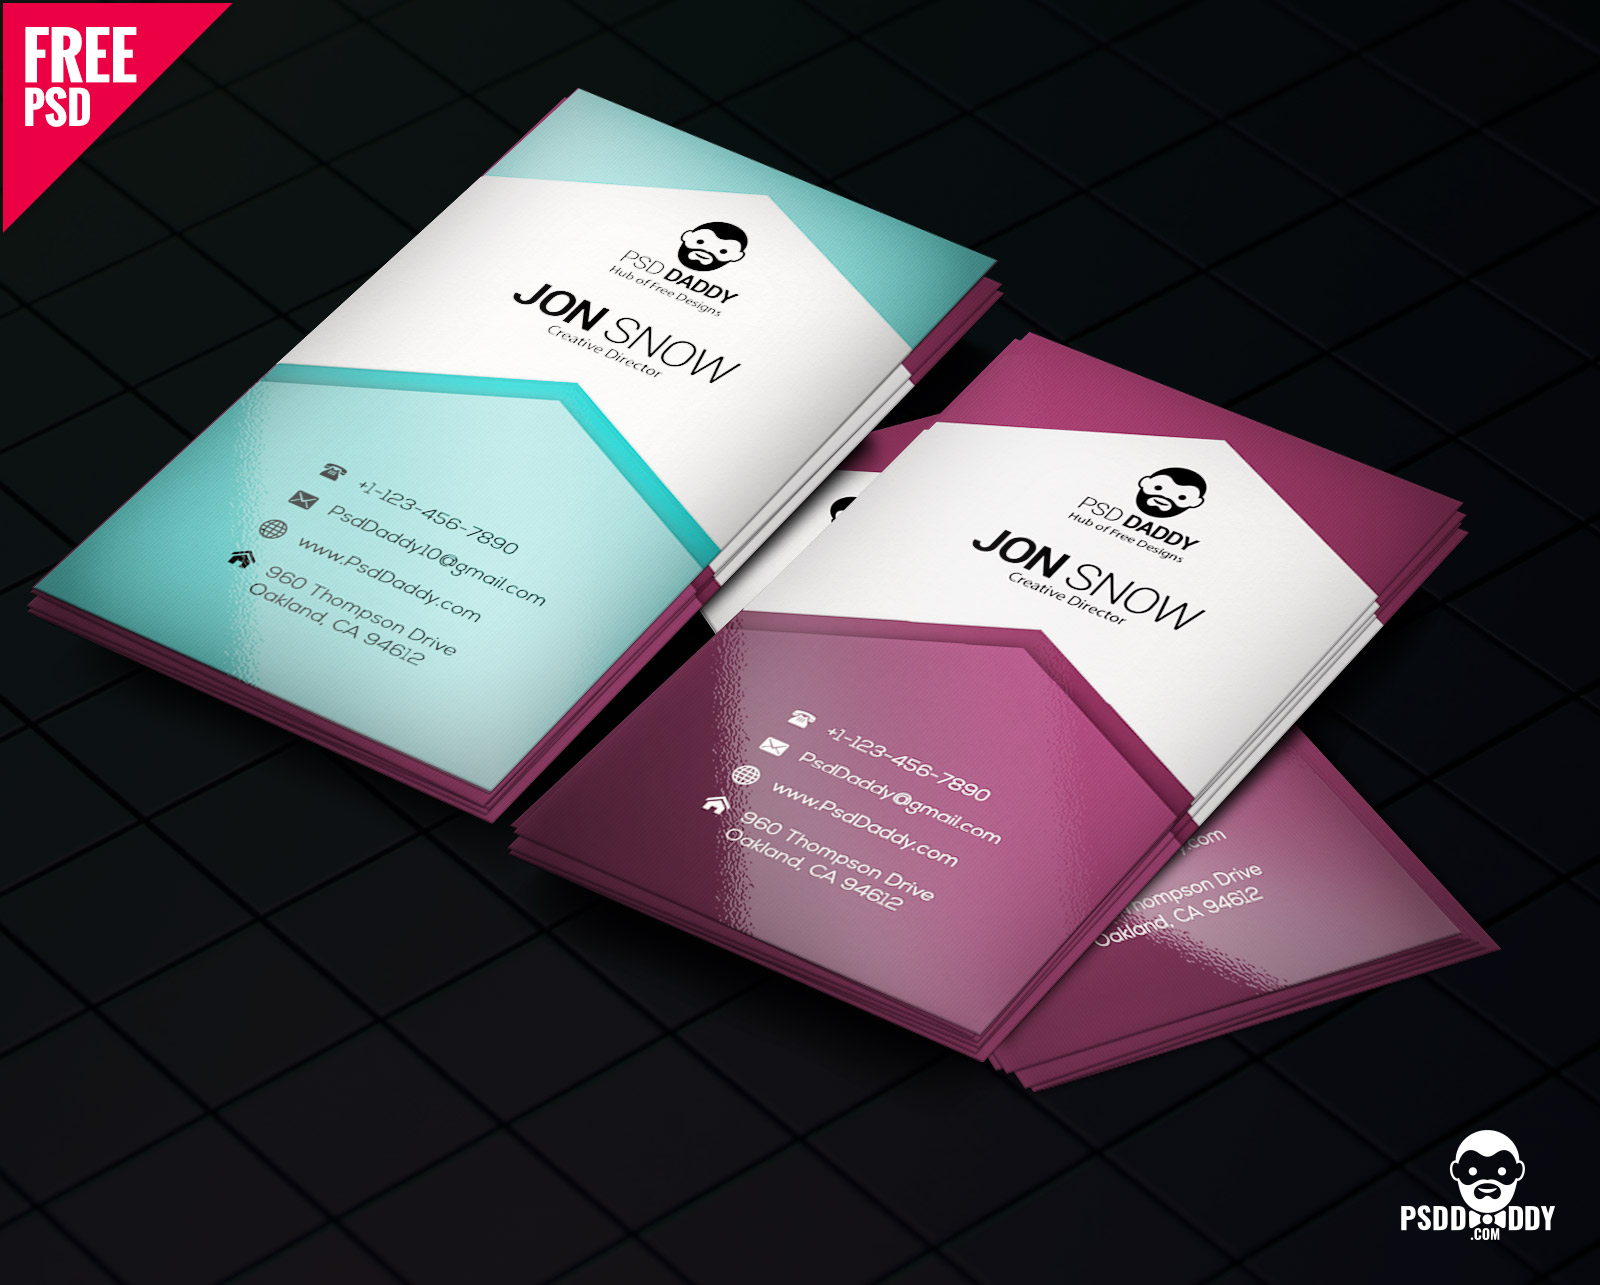 Downloadcreative business card psd free psddaddy business card design business card design templates business card dimensions business card holder cheaphphosting Image collections